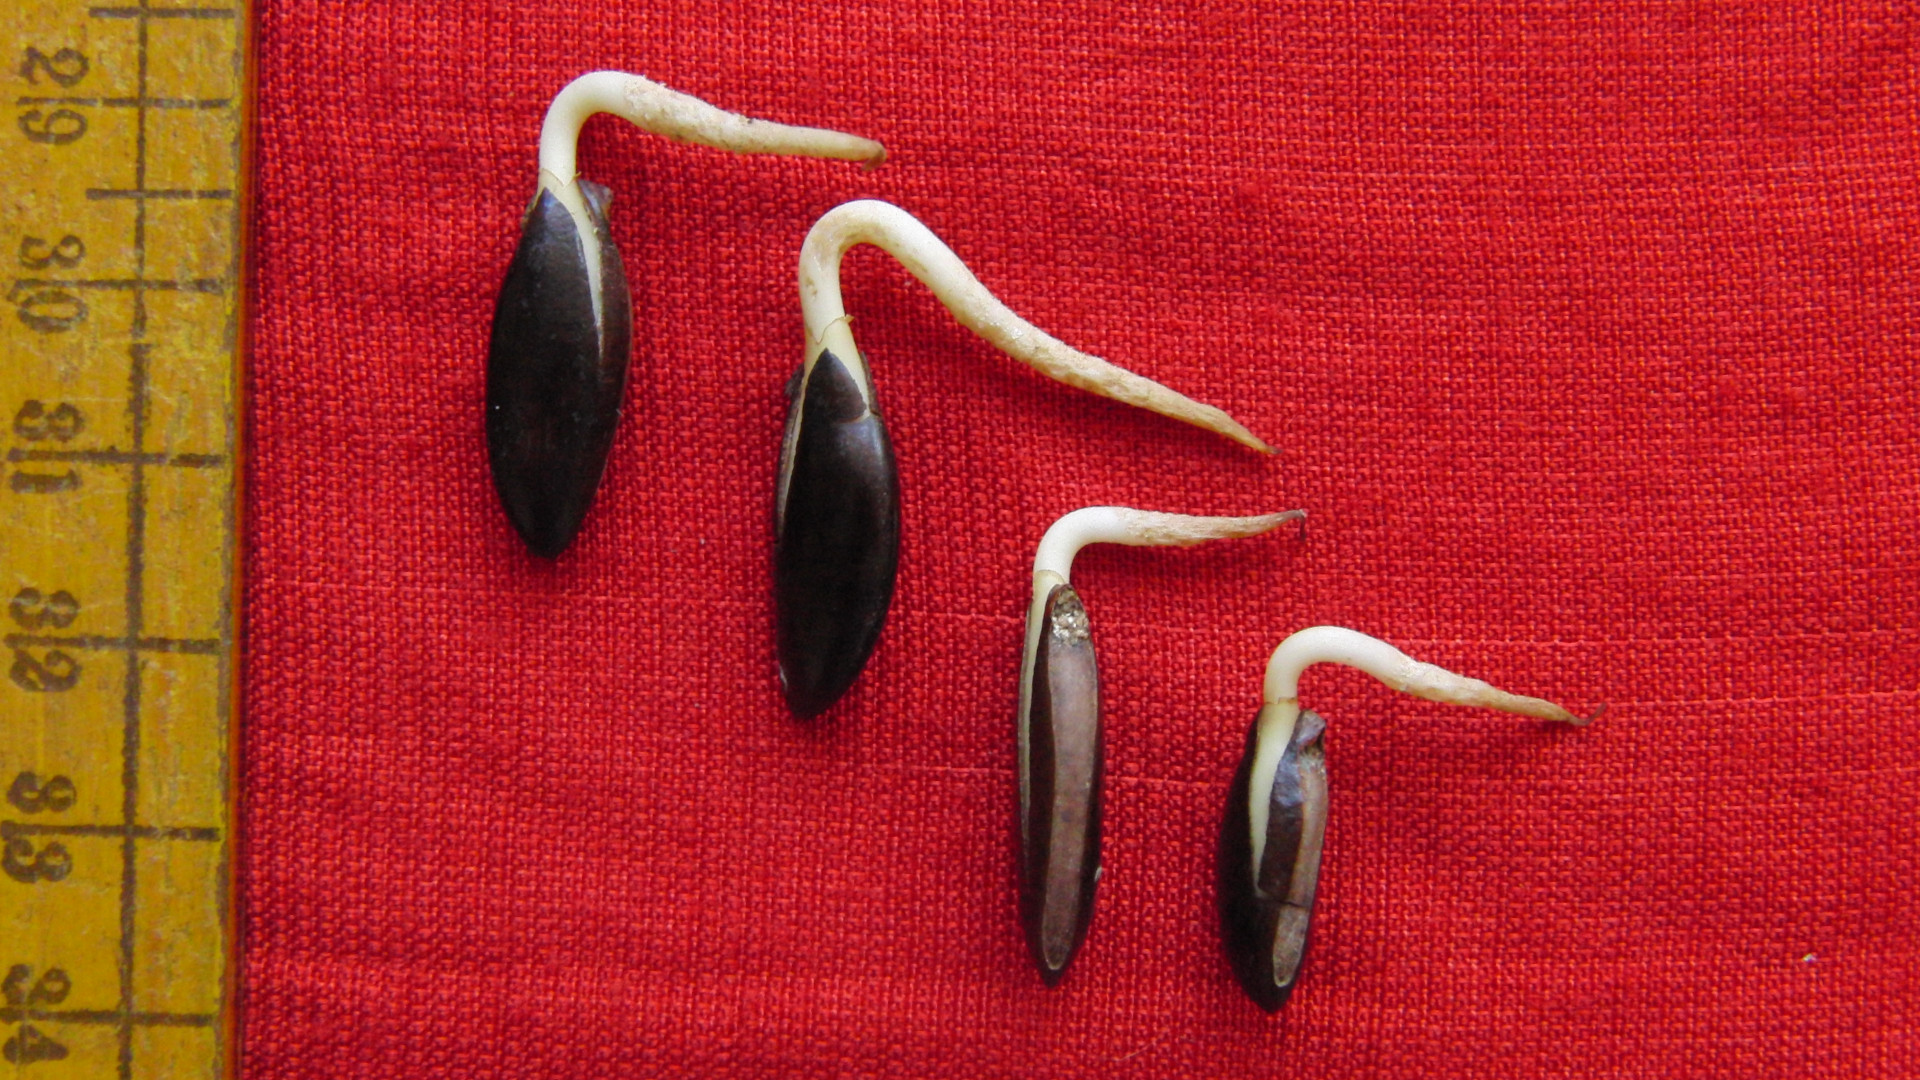 Madhuca insignis seeds